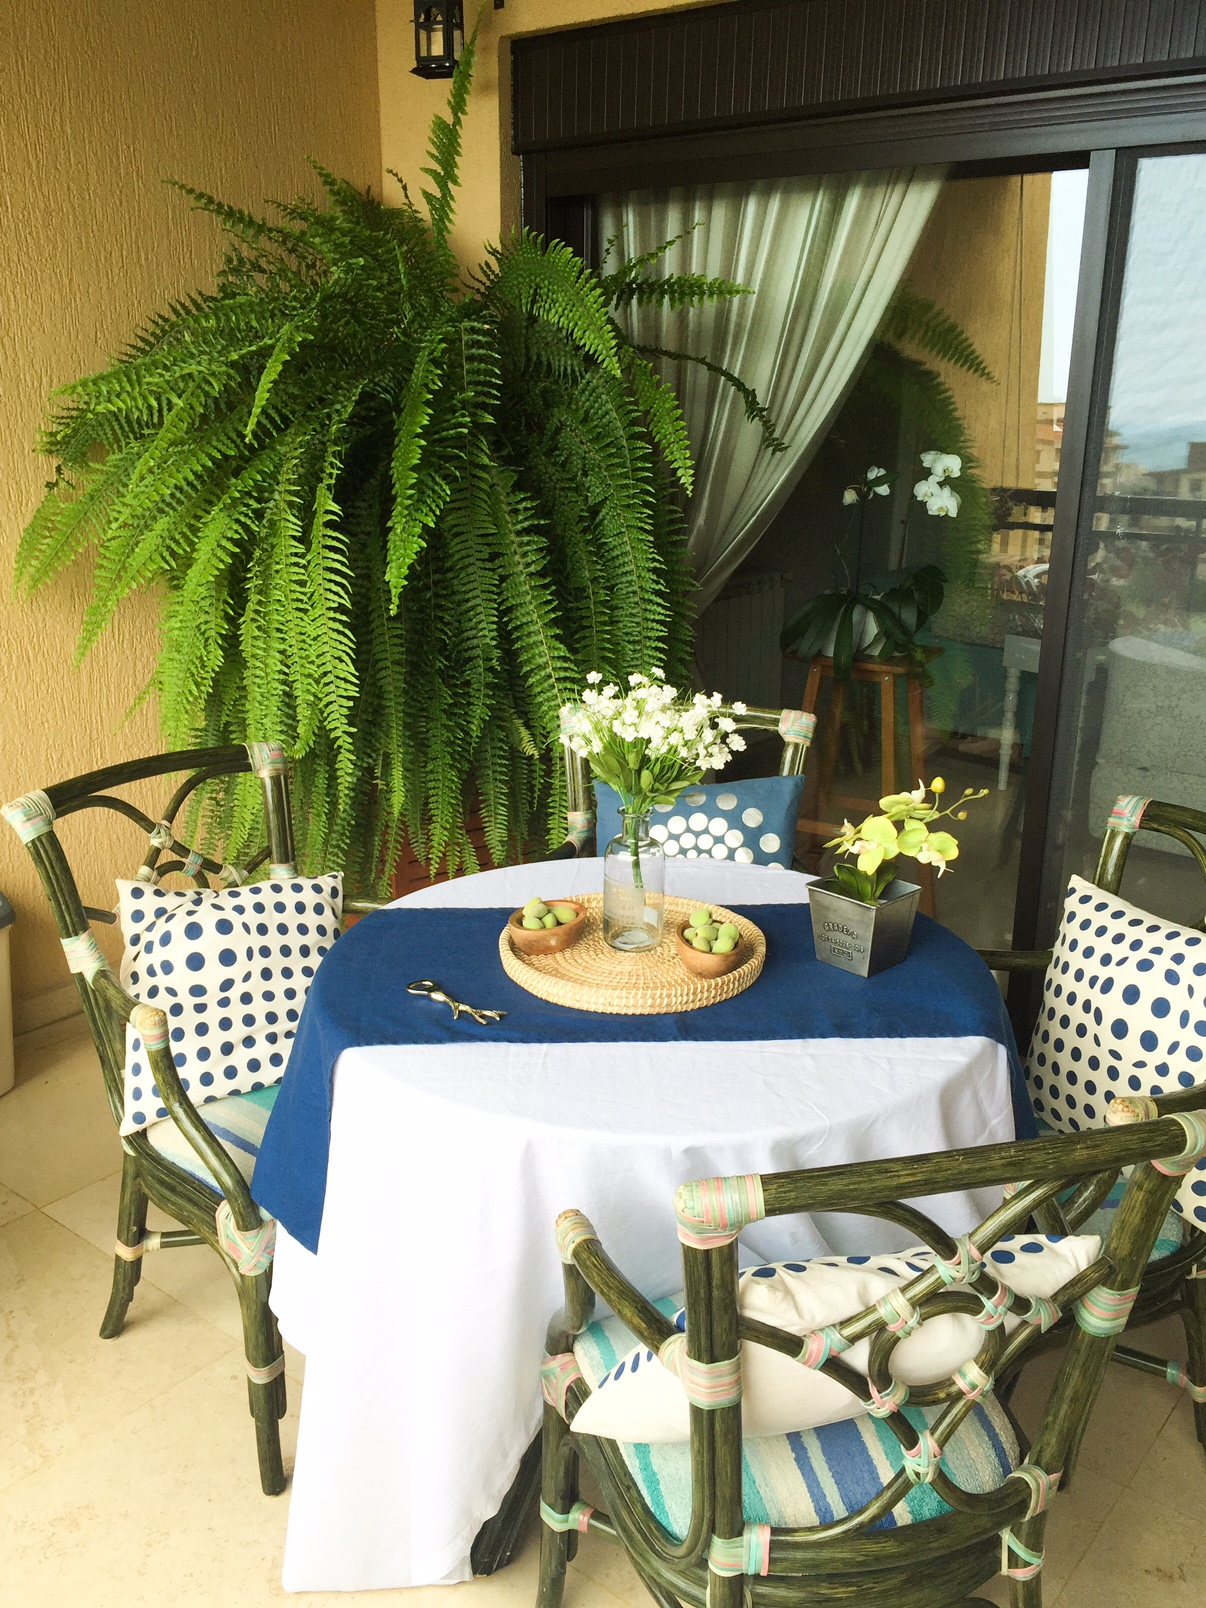 Ivy s home 8 ways to transform your balcony - Ivy interior design software reviews ...